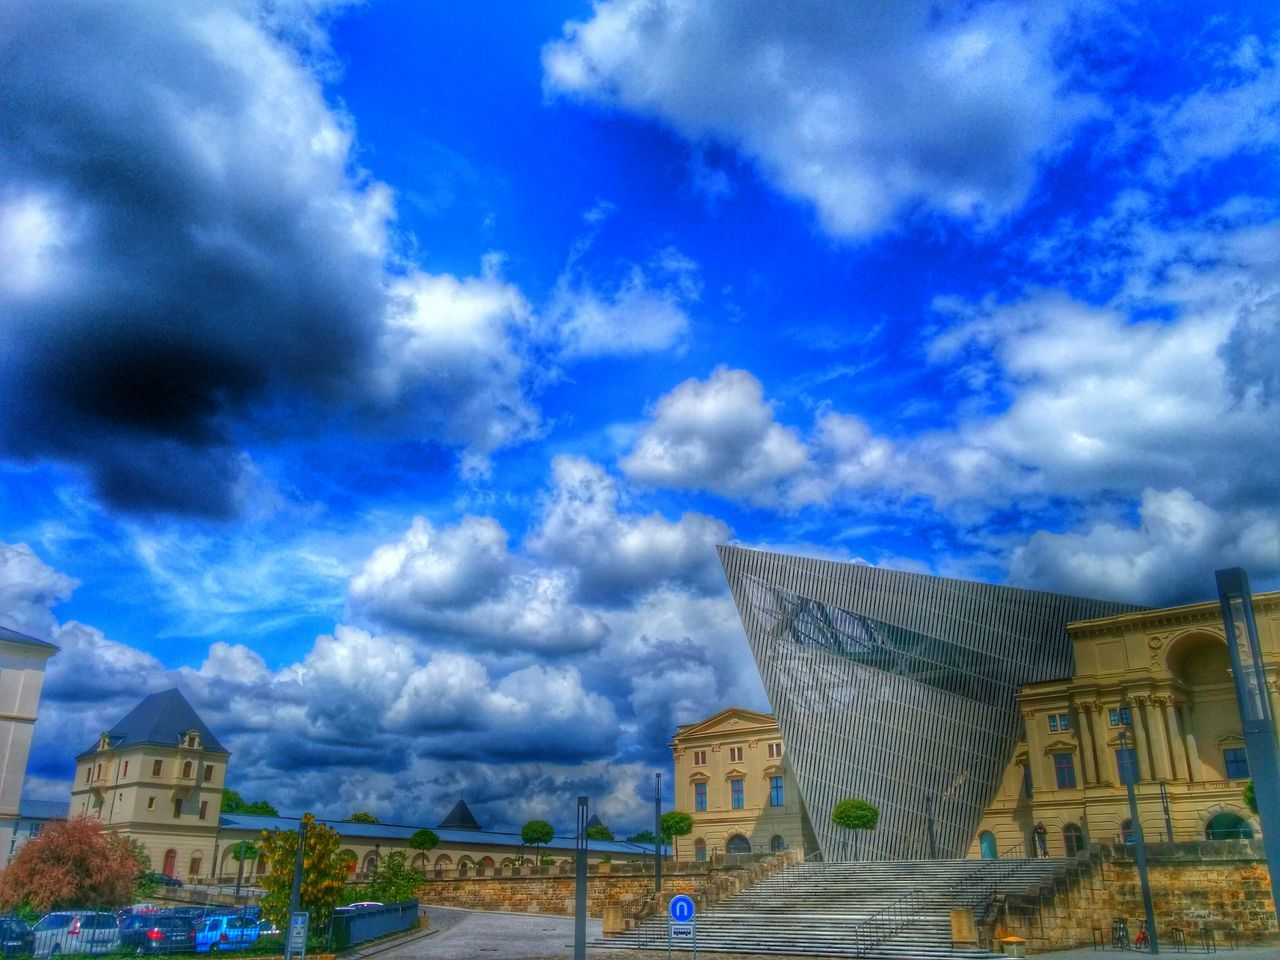 architecture, built structure, building exterior, cloud - sky, sky, history, day, no people, outdoors, low angle view, city